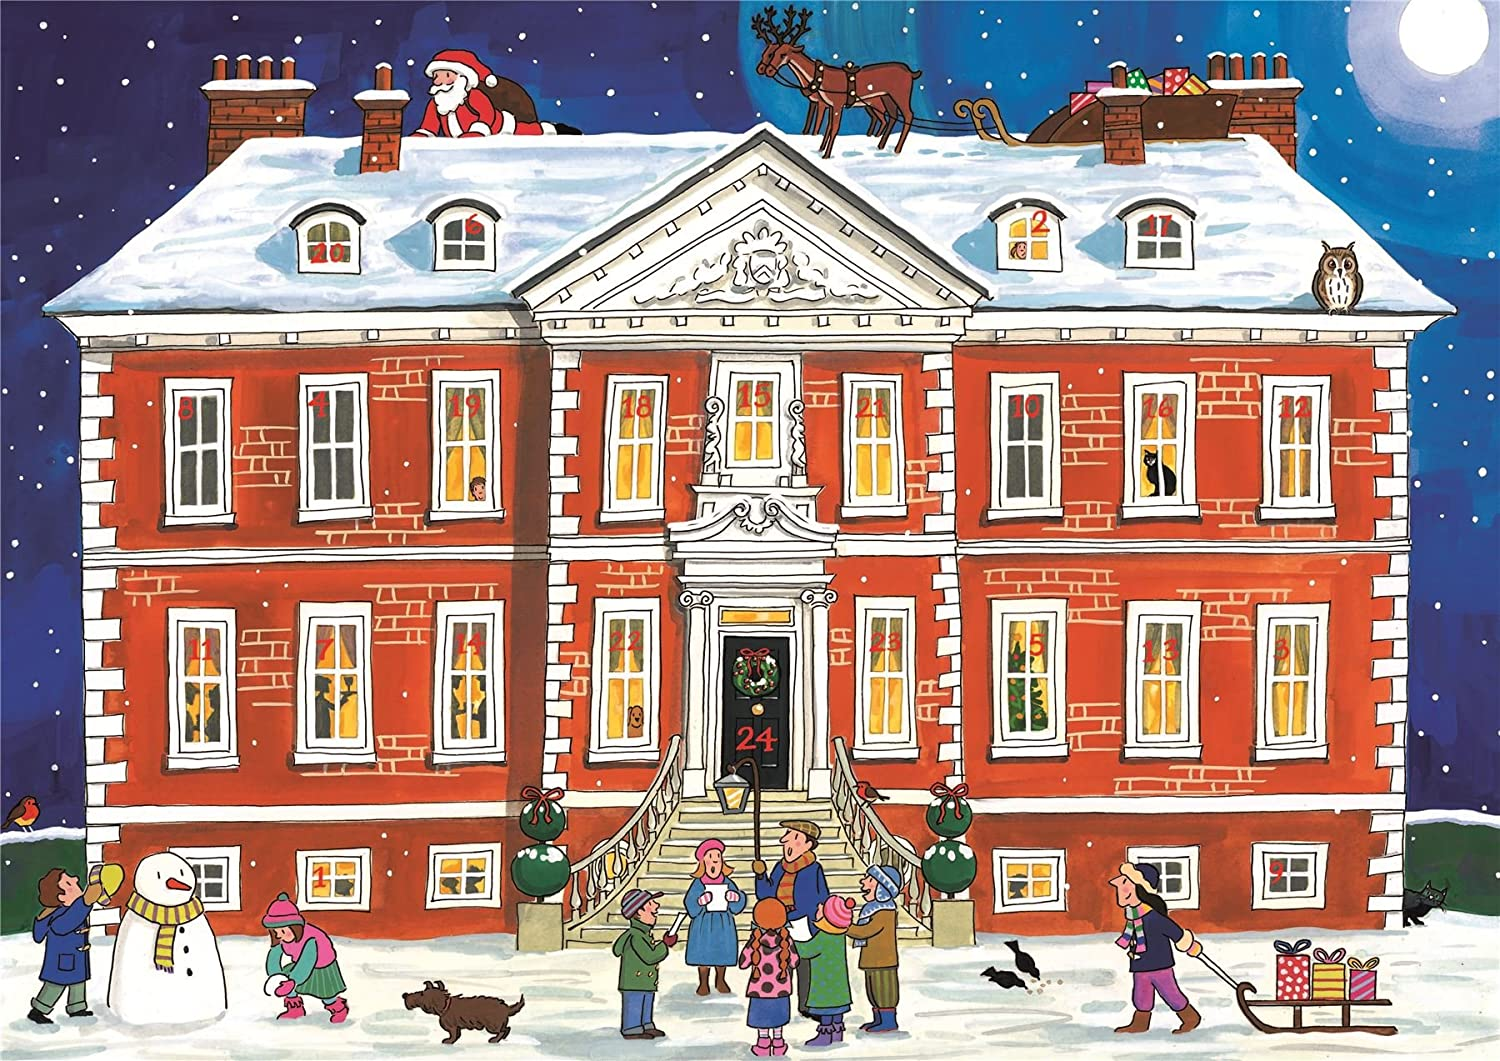 Alison Gardiner Famous Illustrator Unique Traditional Advent Calendar - Designed in England - Country House Festive Season Alison Gardiner Design Ltd AC3